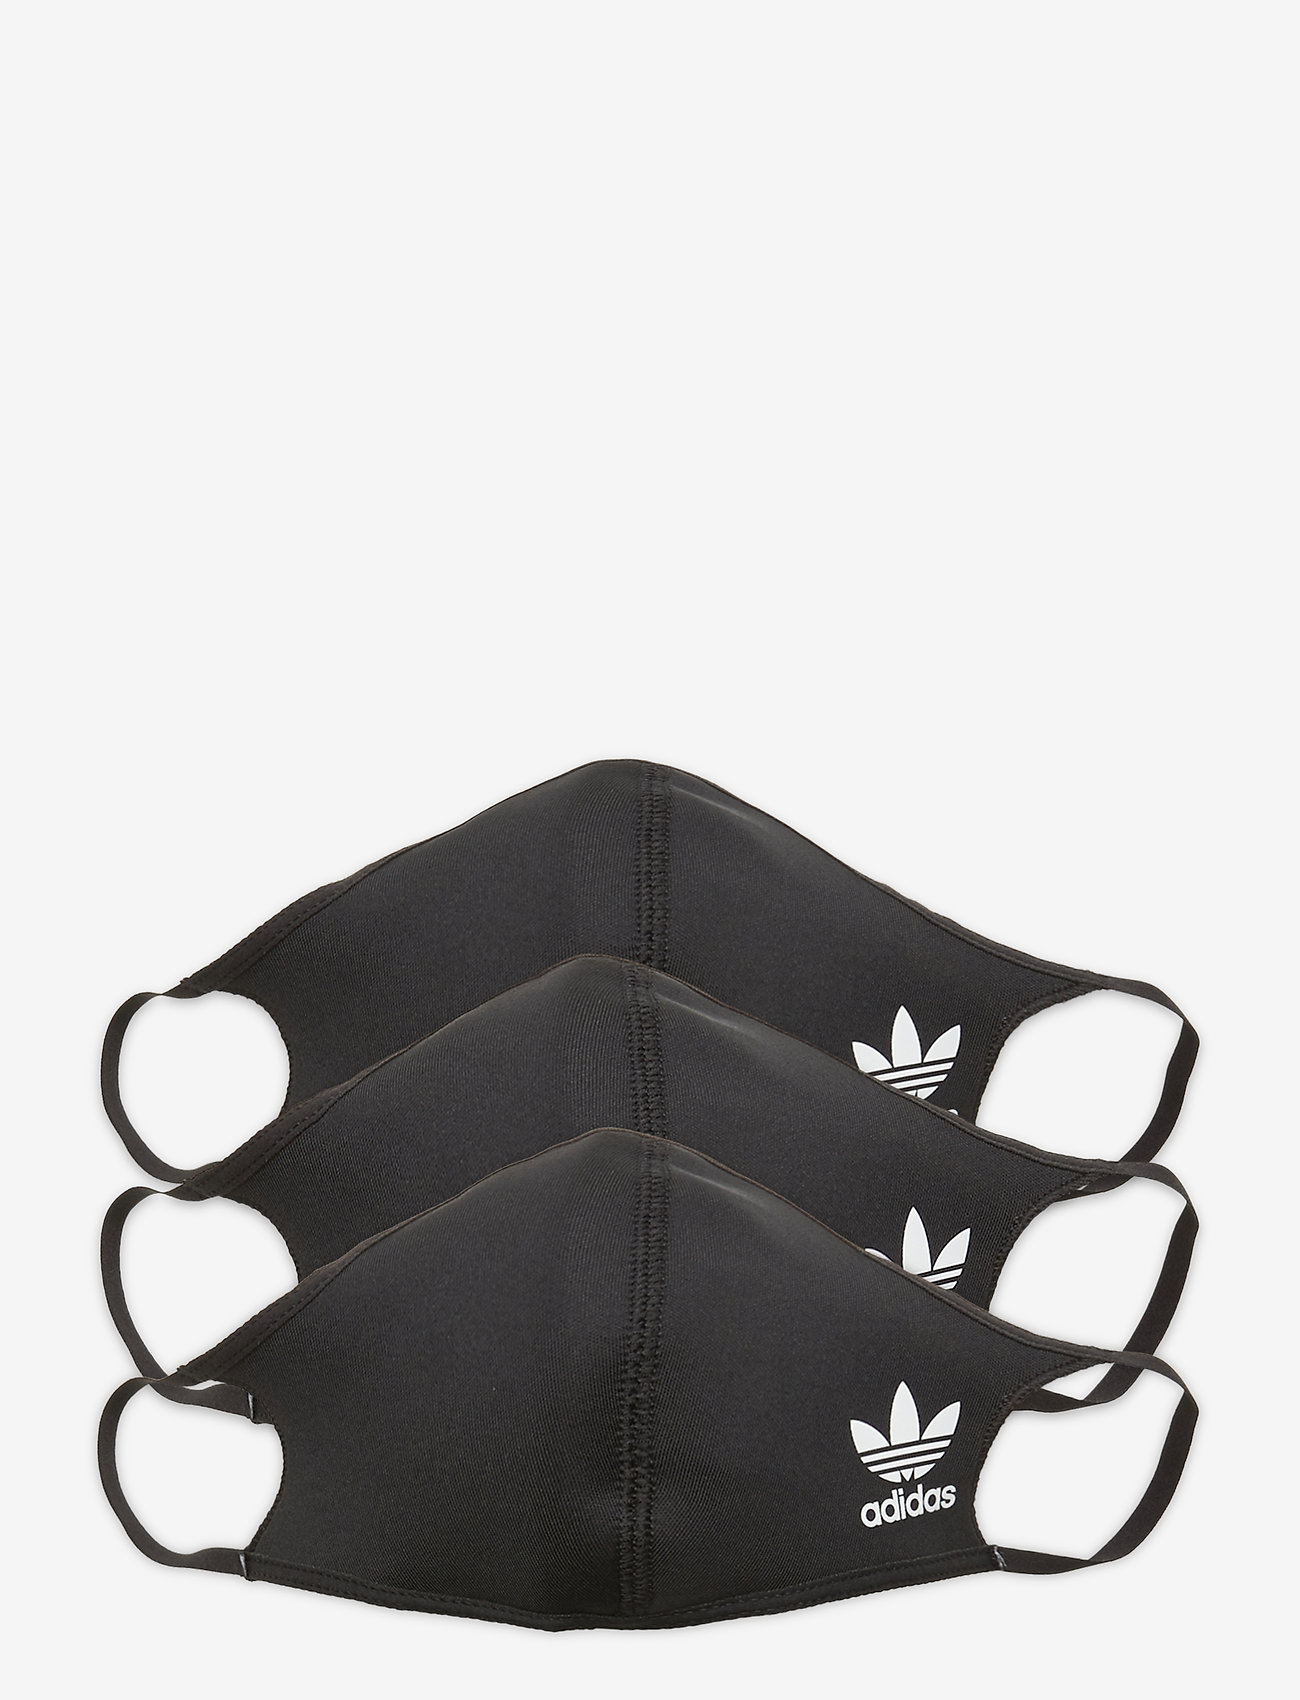 adidas Performance - Face Covers 3-Pack XS/S - Not For Medical Use - gezicht maskers - black/white - 0